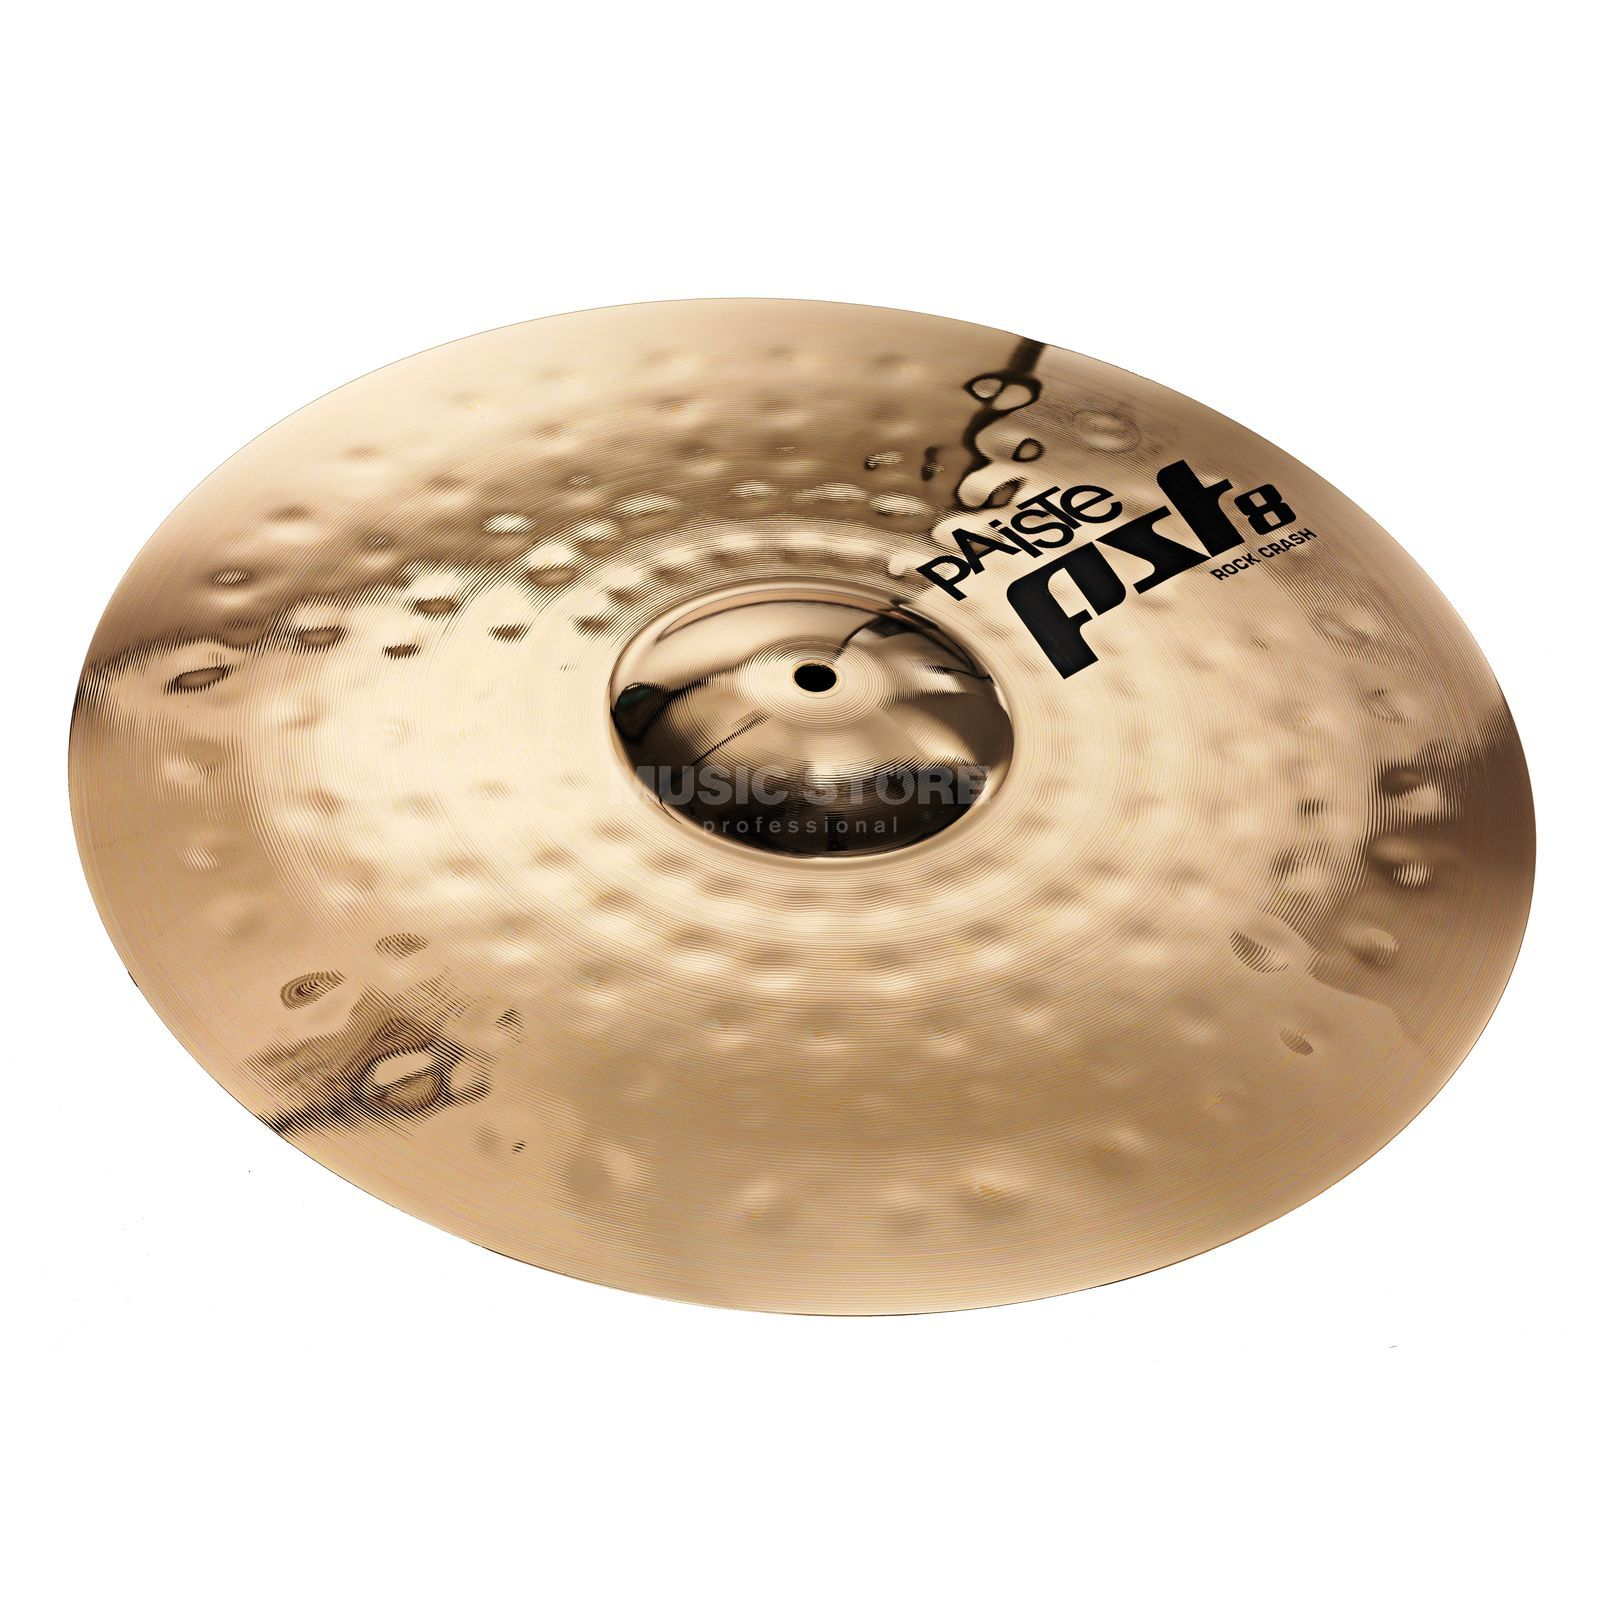 "Paiste PST8 Rock Crash 17"", Reflector Finish Productafbeelding"